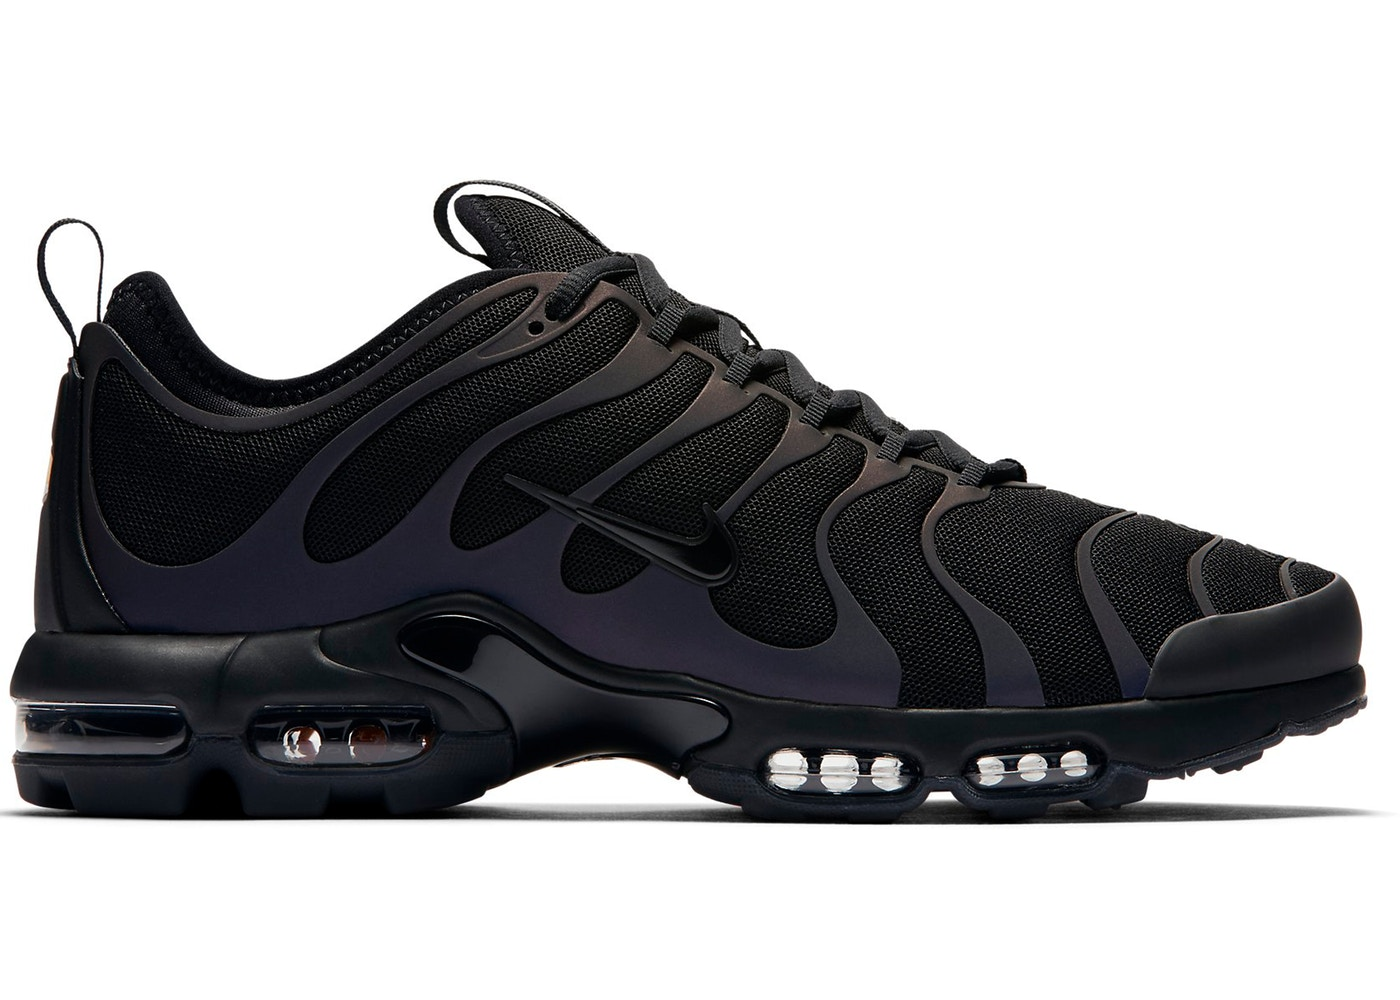 Nike TN Air Max Plus Triple Black | 918240 002